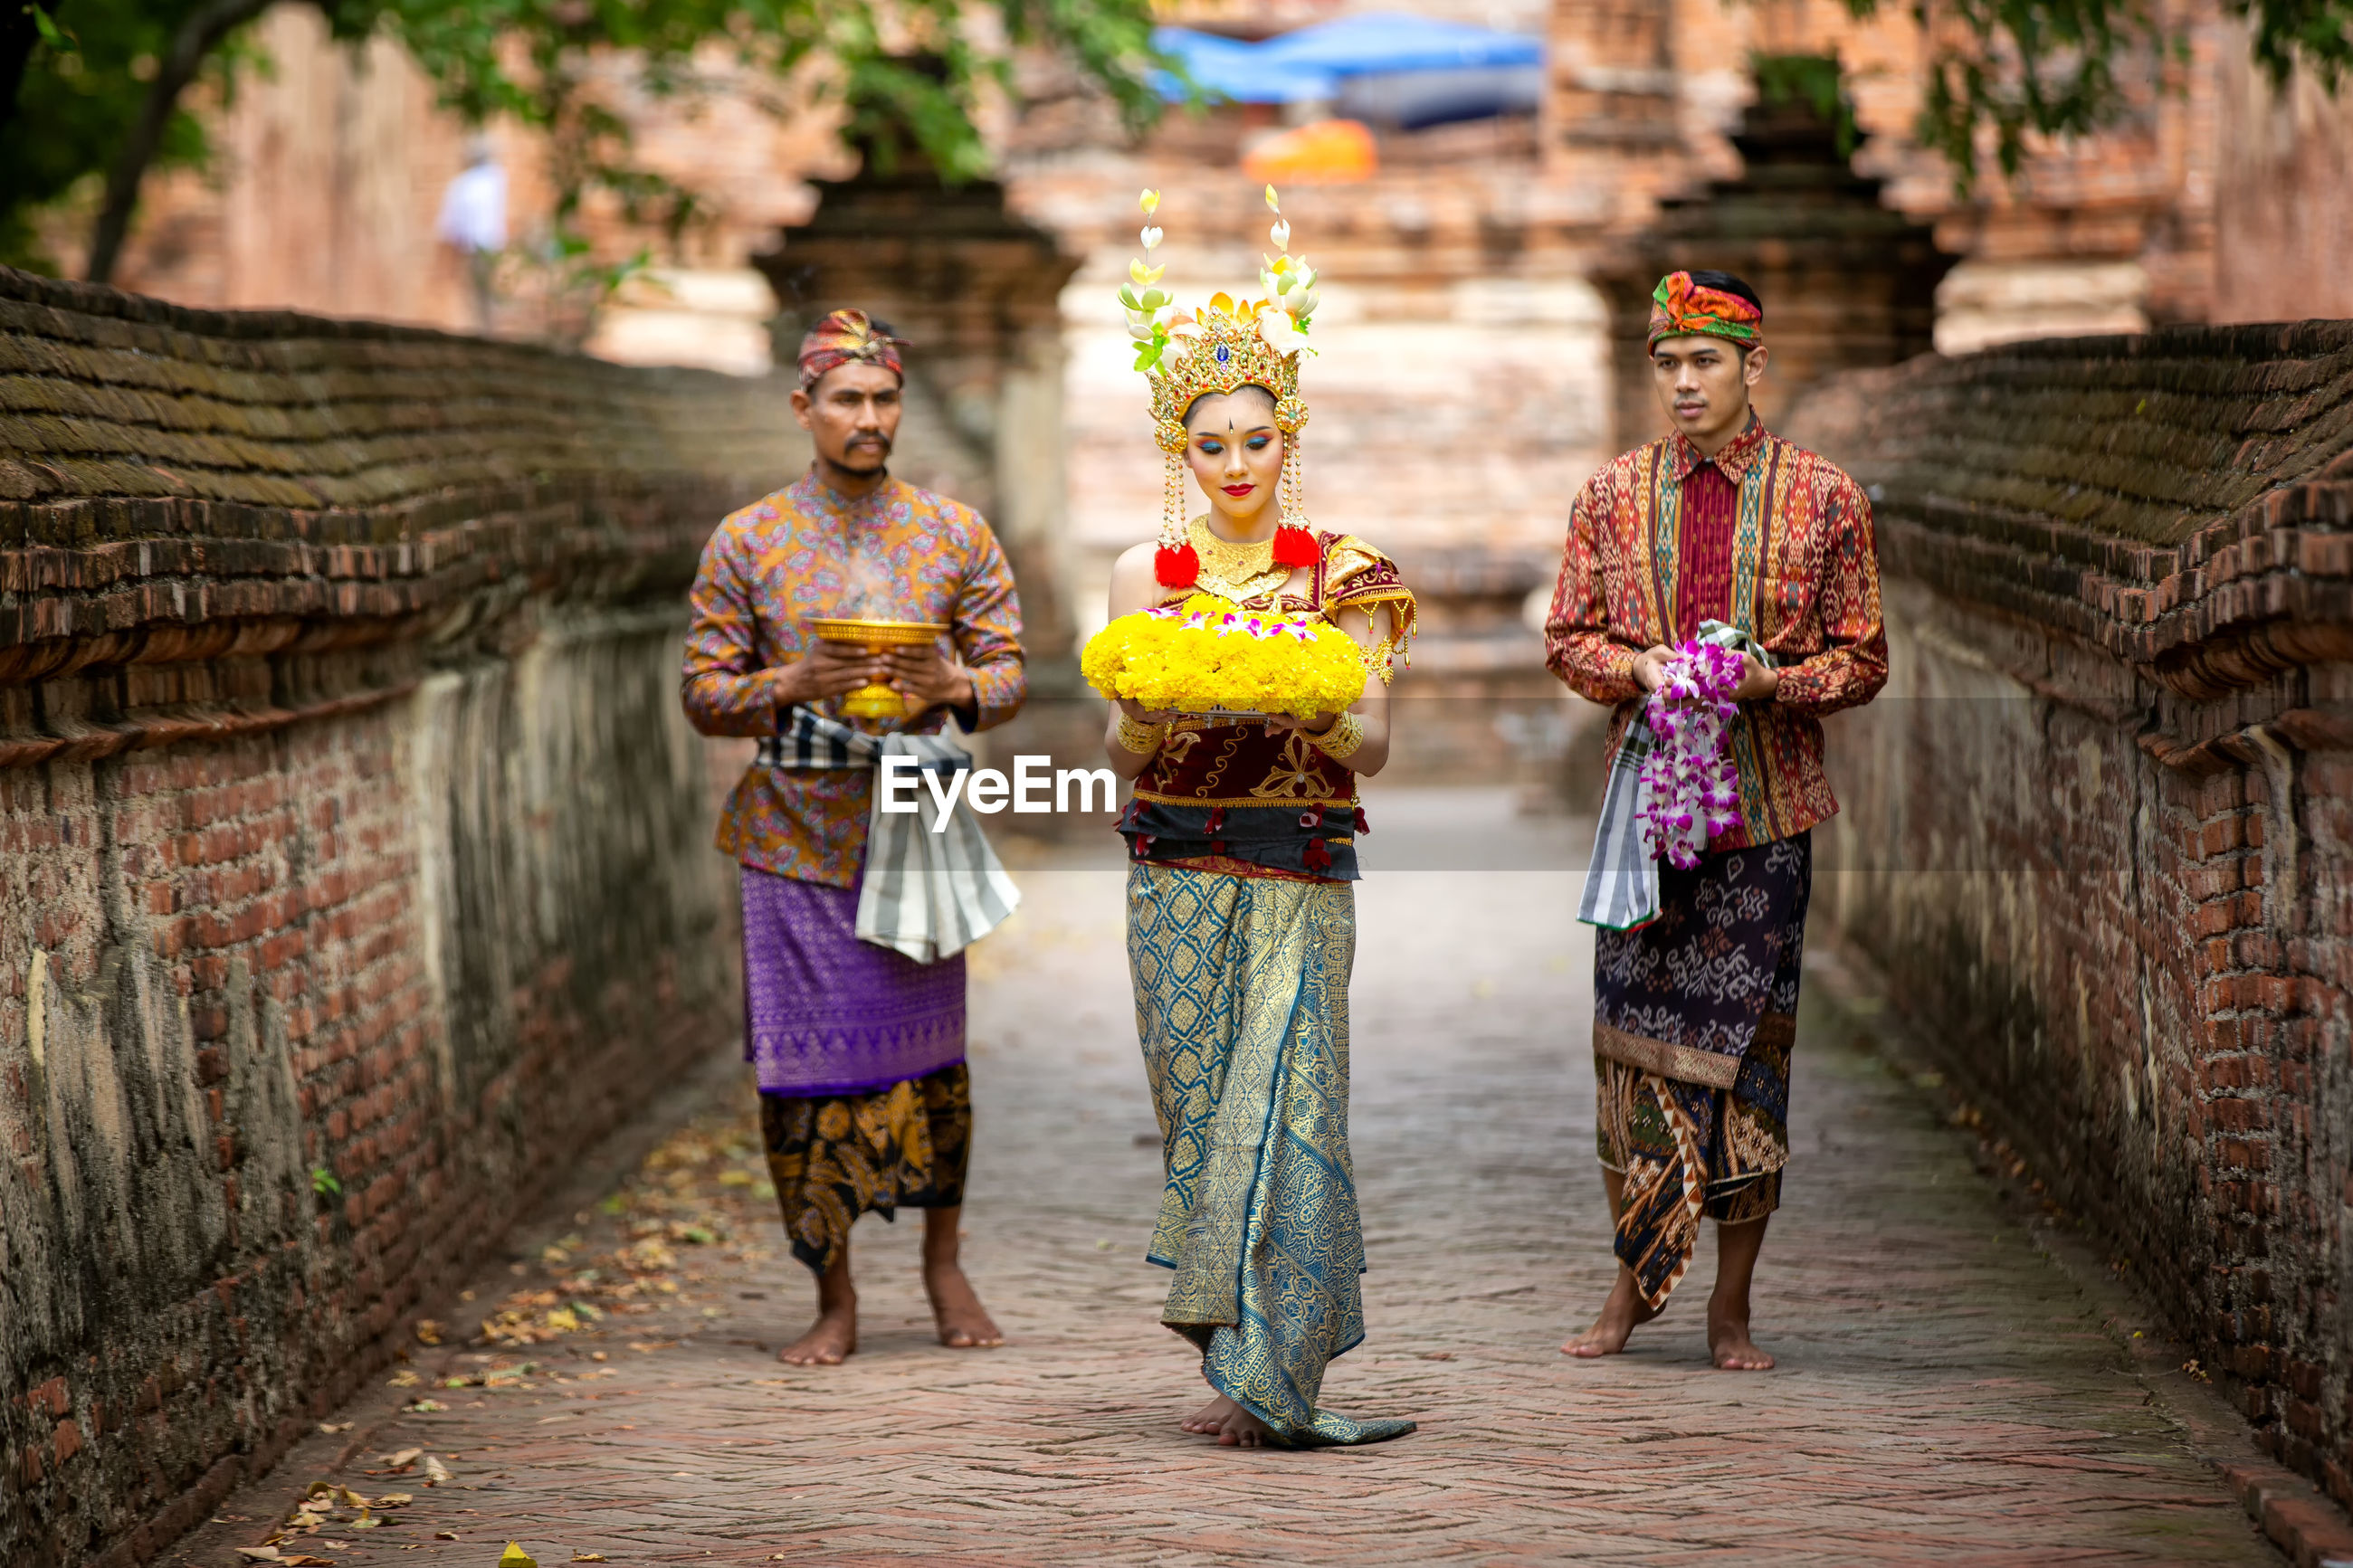 Men and woman with religious offerings walking on footpath